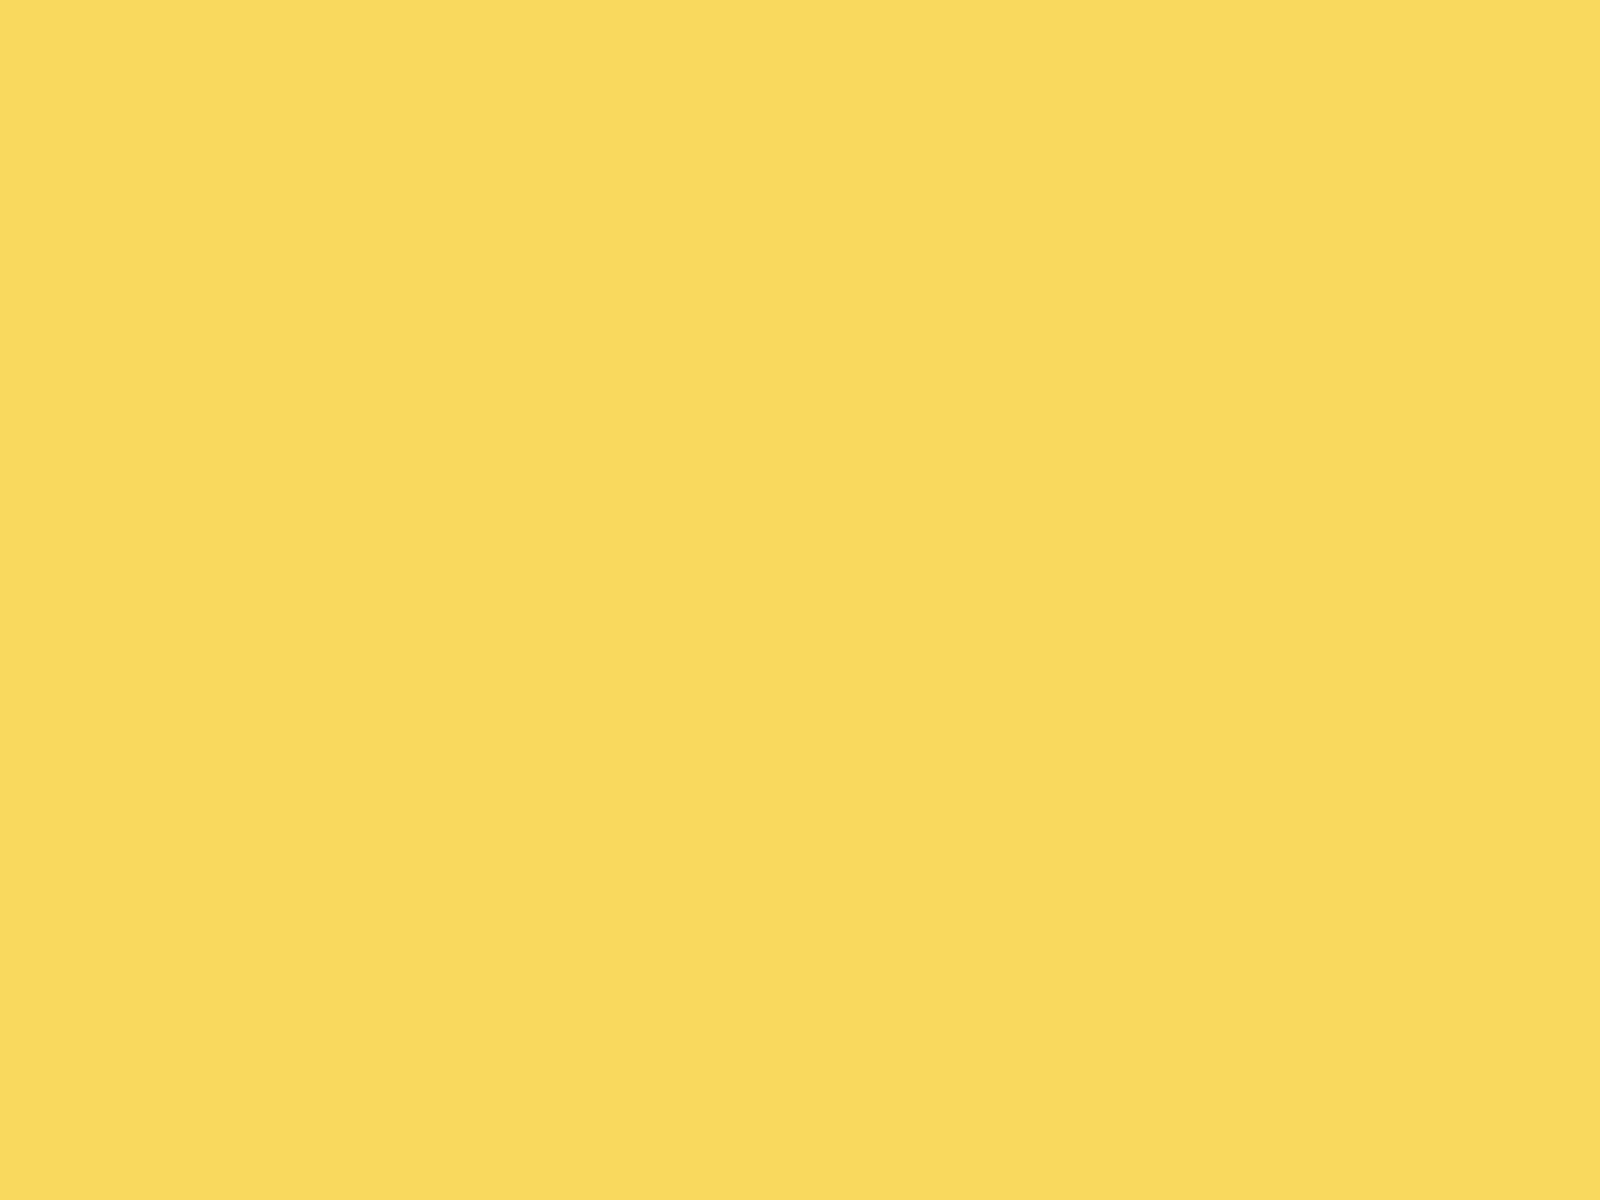 1600x1200 Royal Yellow Solid Color Background